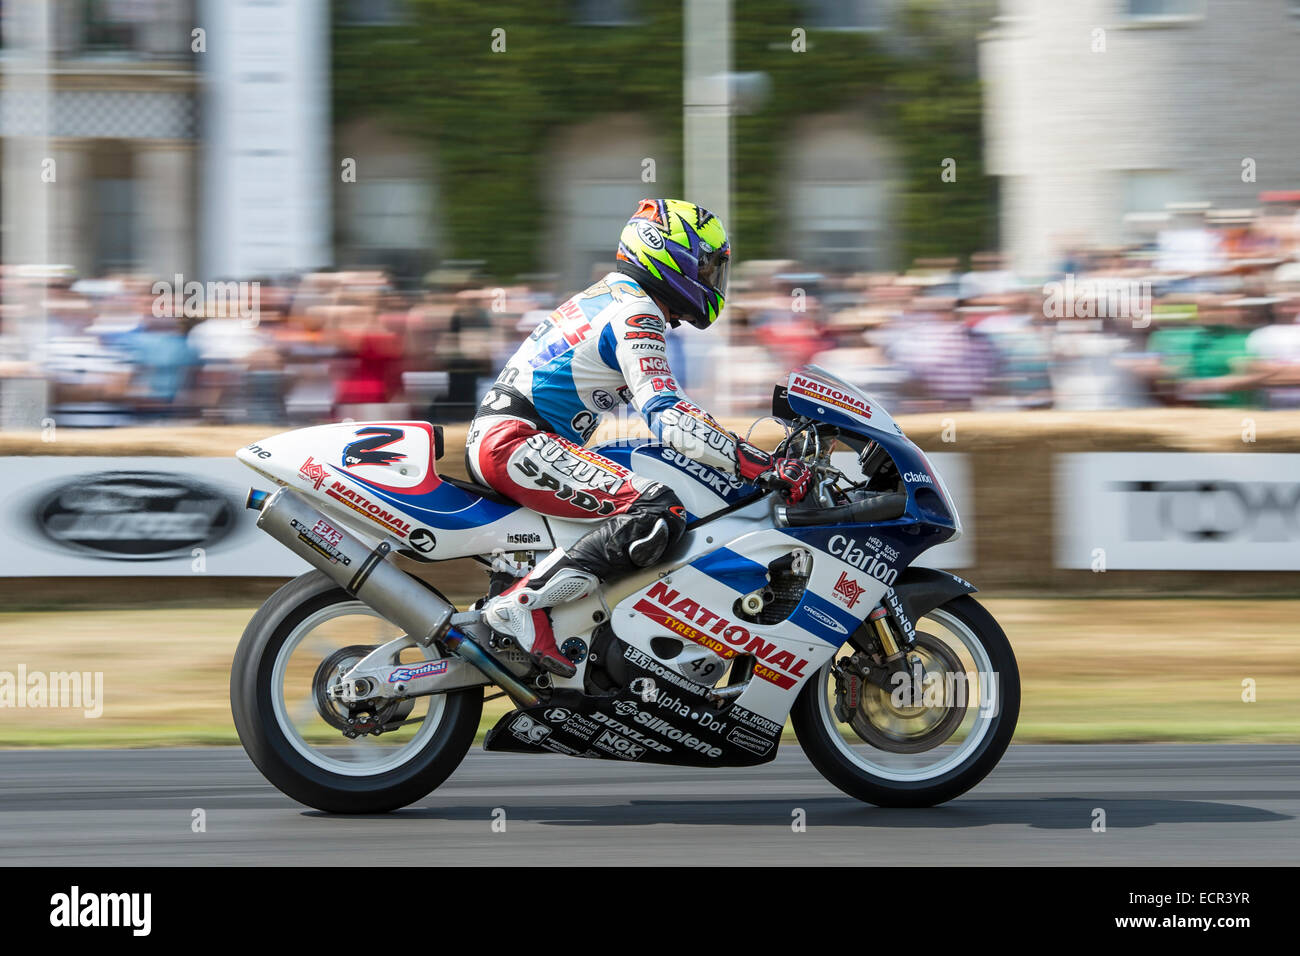 Motorbike At Goodwood Festival Of Speed   Stock Image